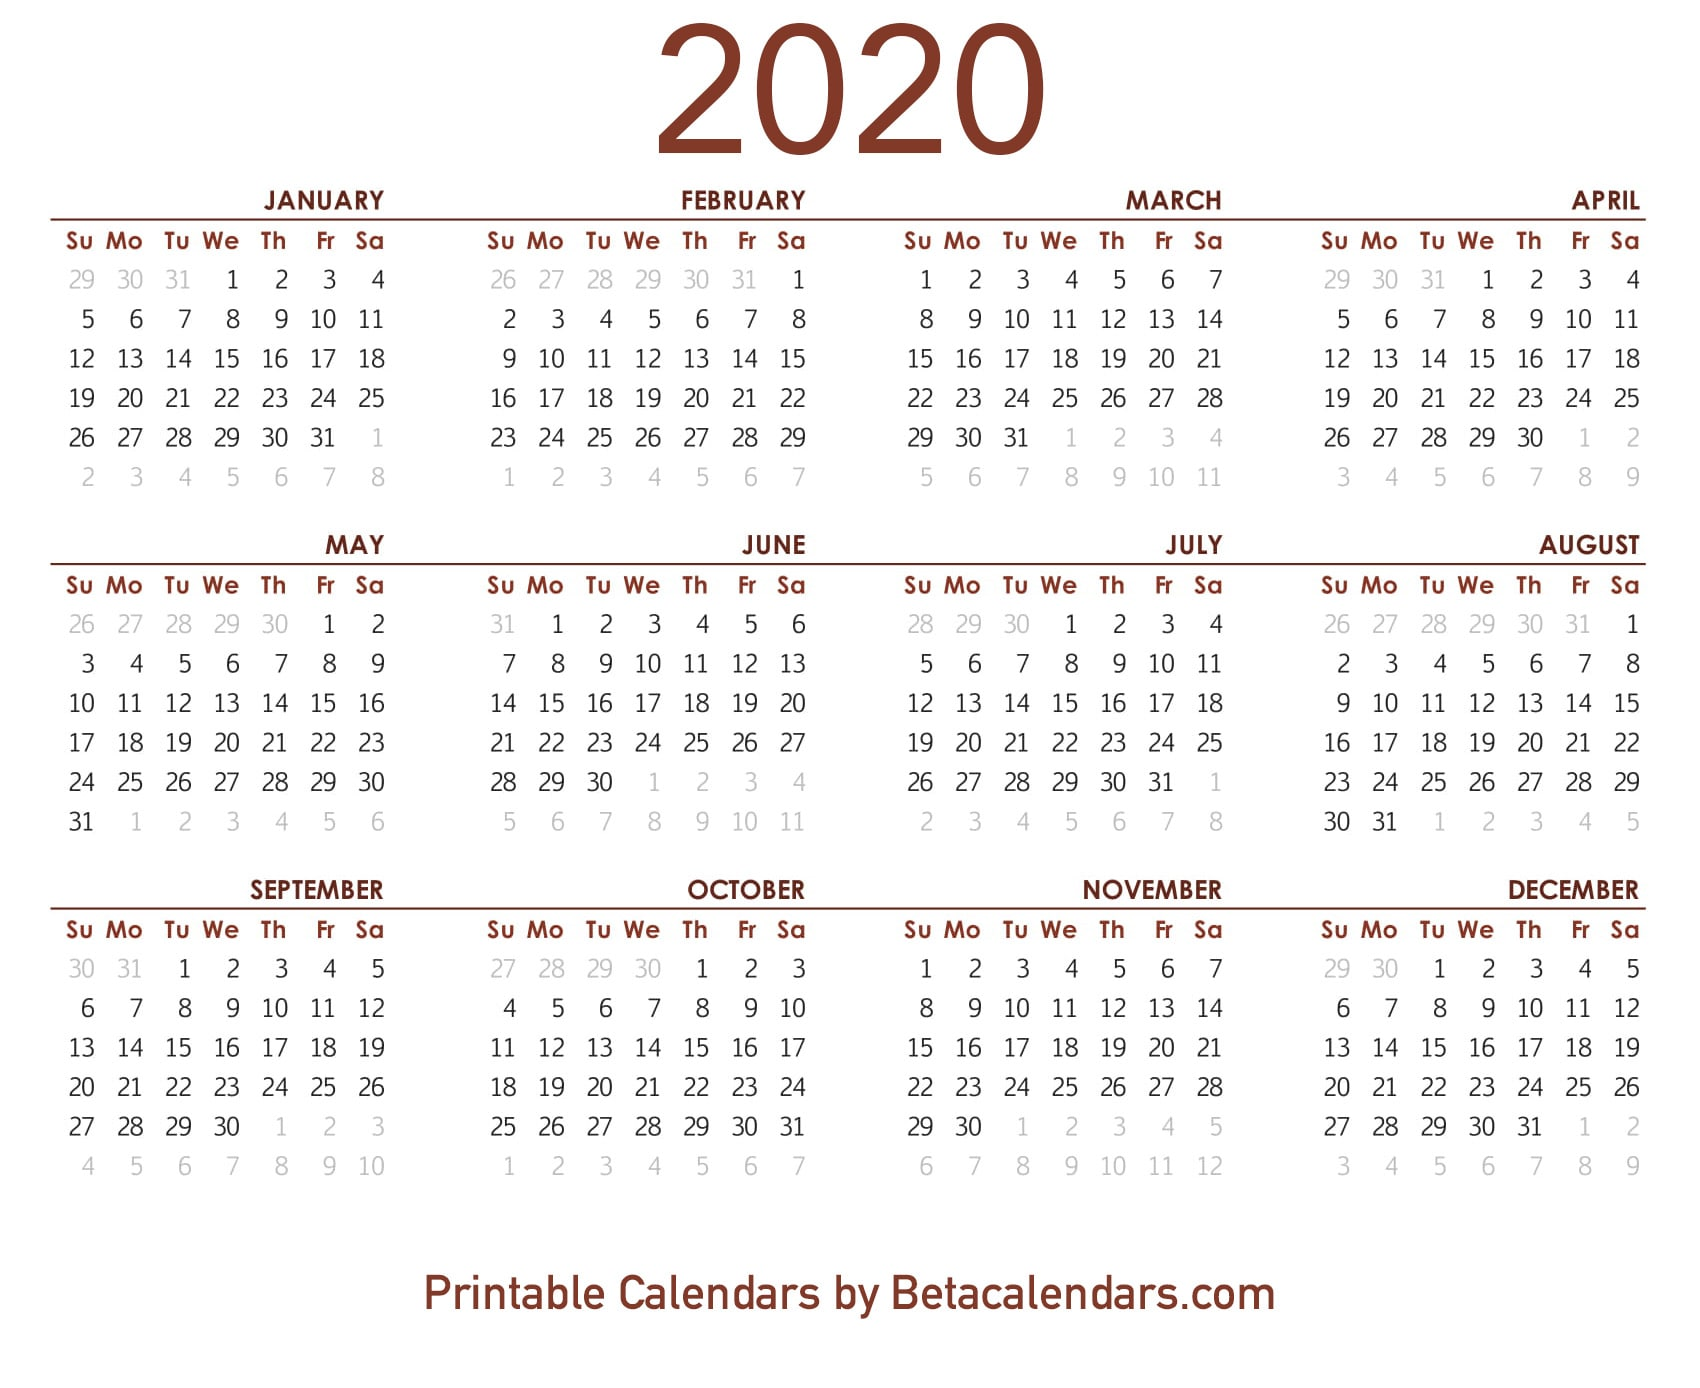 photo relating to Calendar 2020 Printable identify 2020 Calendar - Beta Calendars